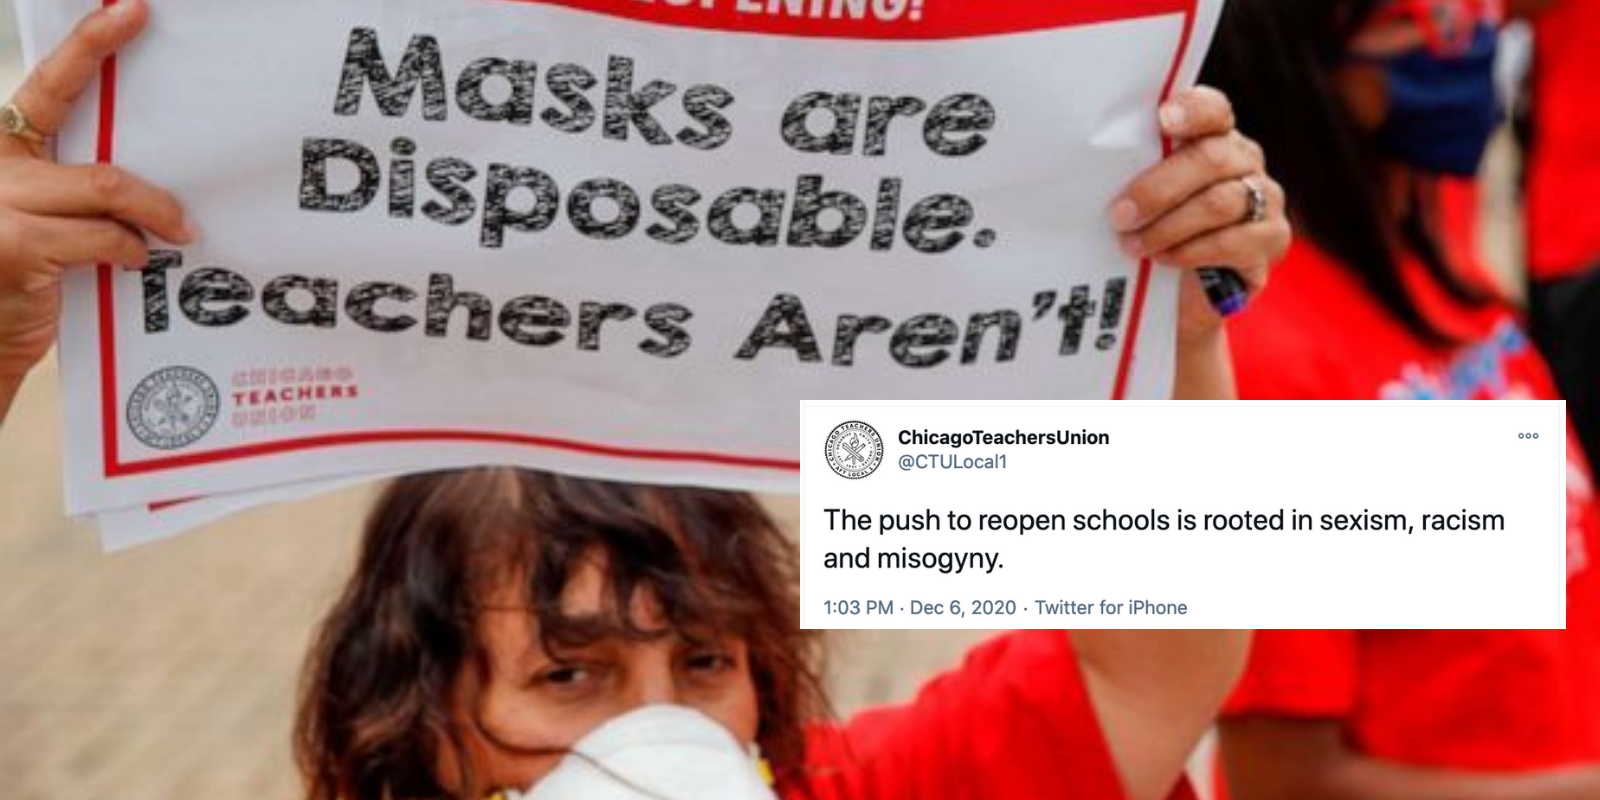 Chicago Teachers Union claims reopening schools is racist, sexist, and misogynist